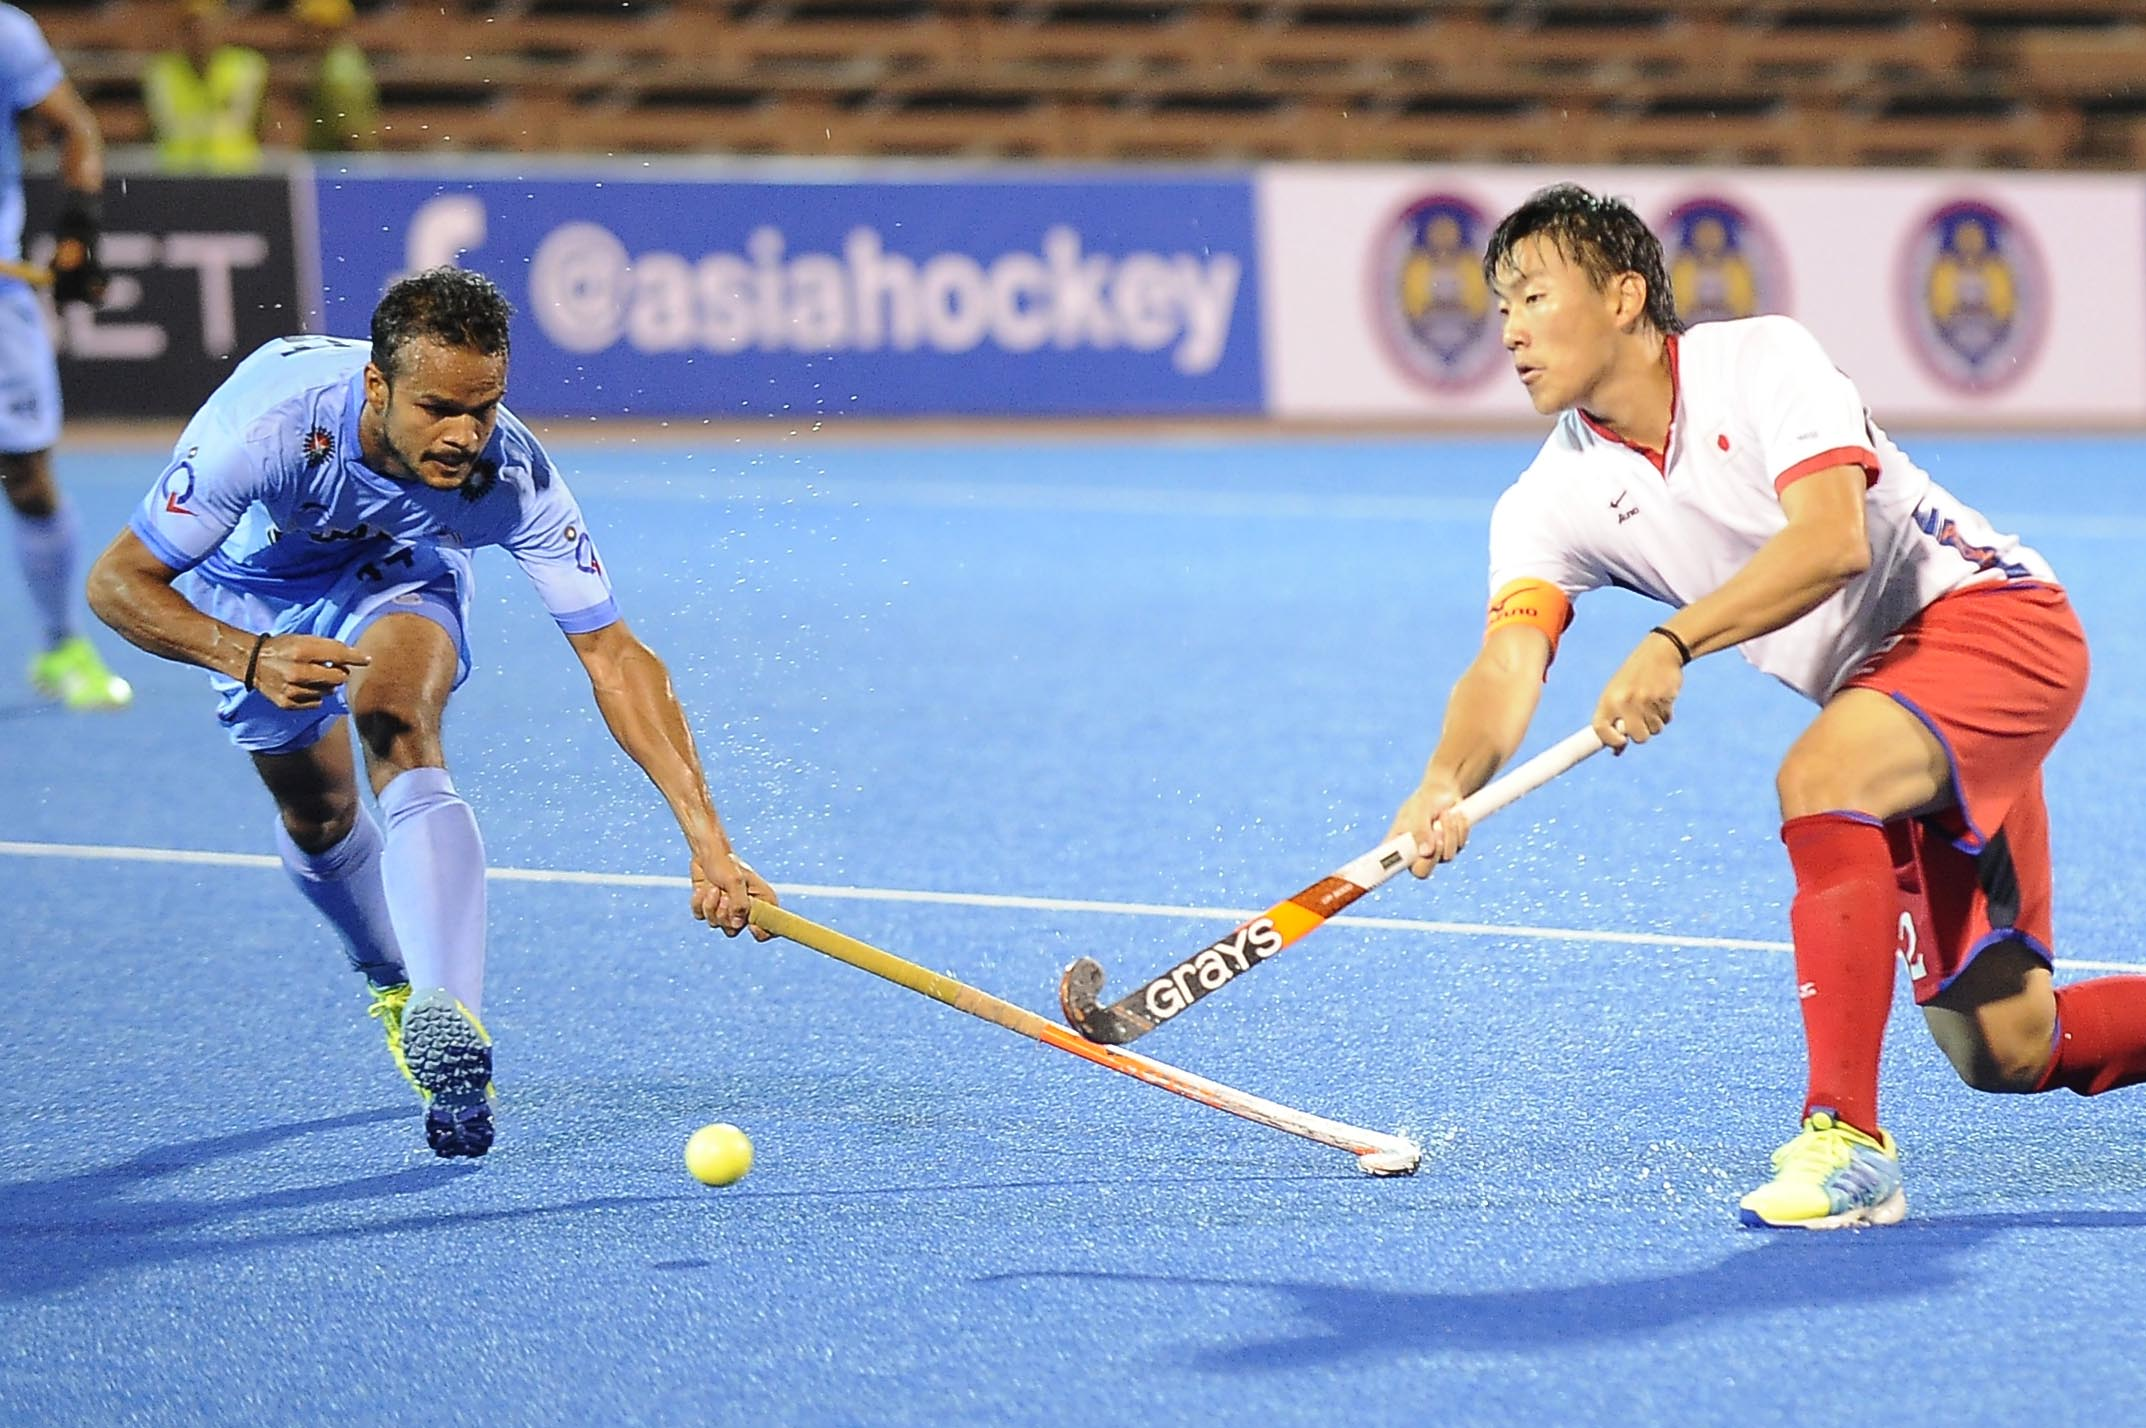 India's player (left) challenges a Japanese player for the ball during their QNET 4th Men's Asian Champions Trophy 2016 match at the Wisma Belia Hockey Stadium, Kuantan today. India won 10-2.